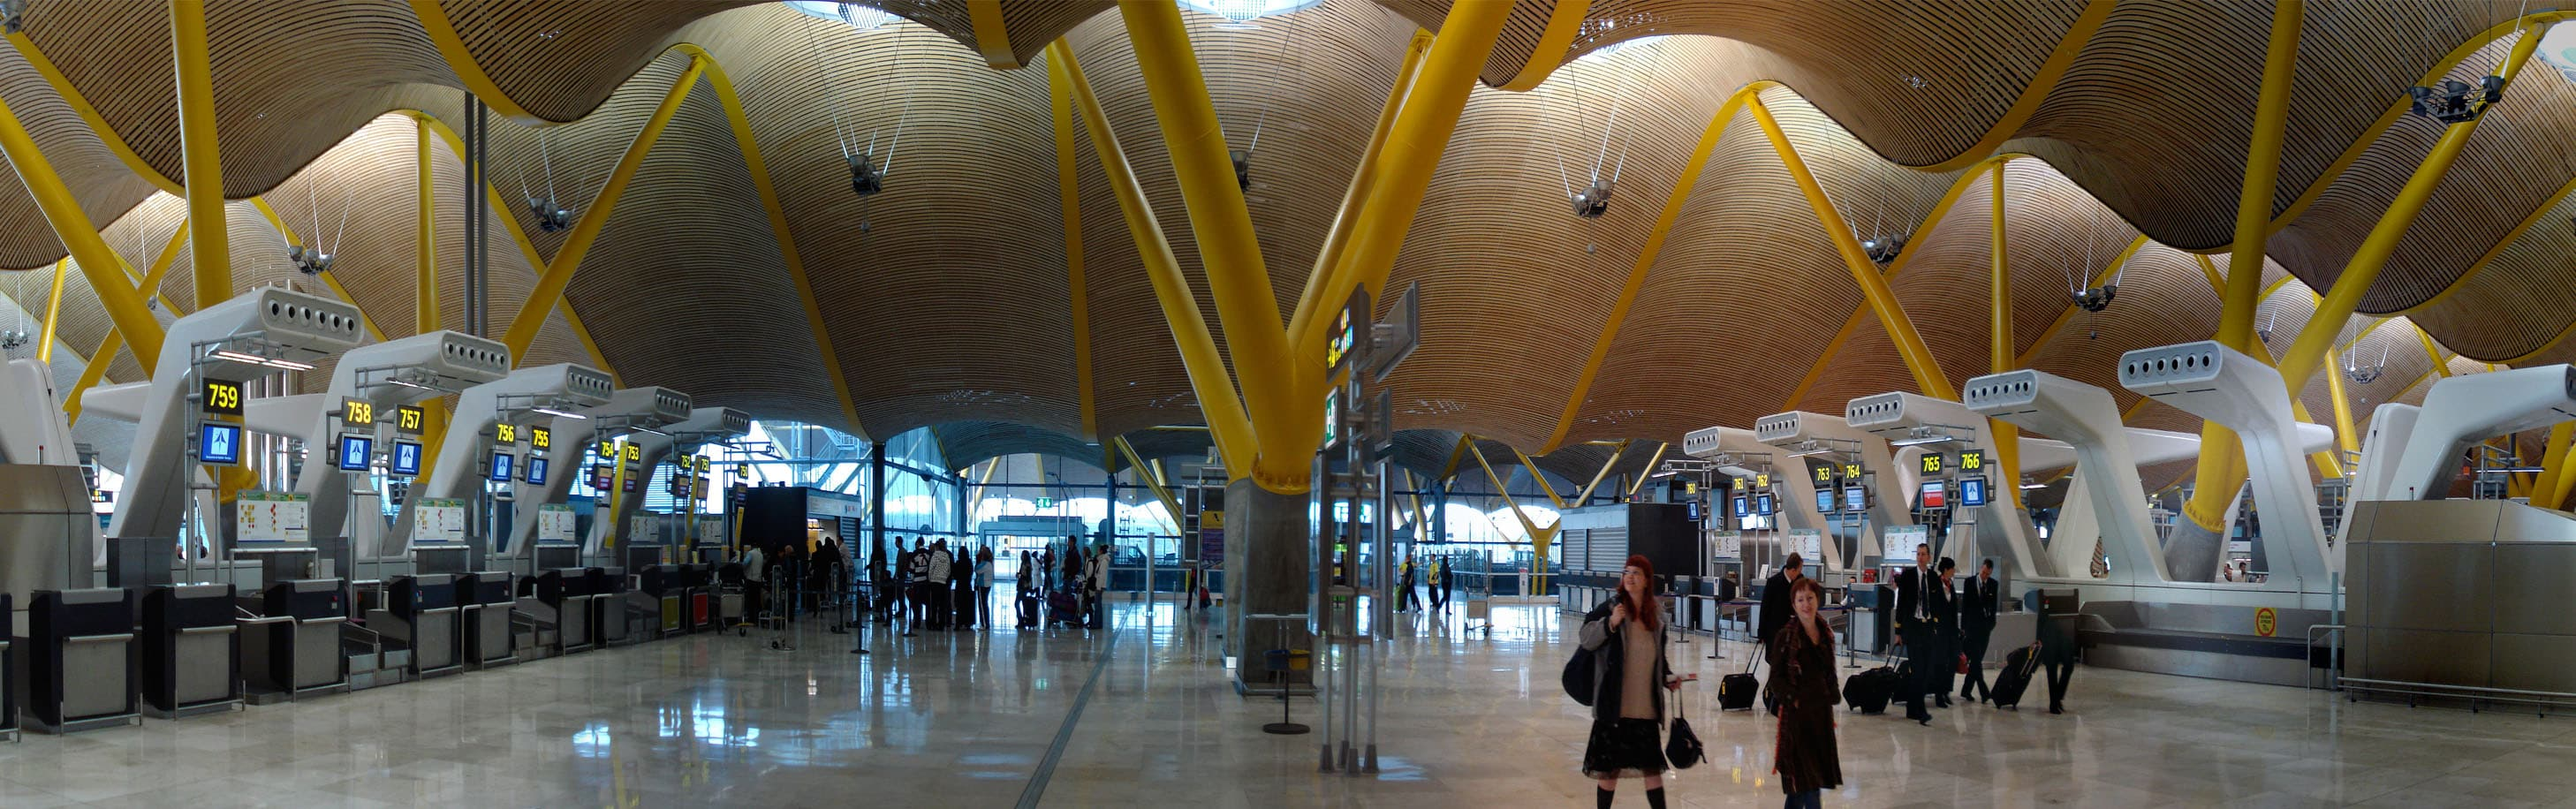 Parking aeropuerto madrid t4